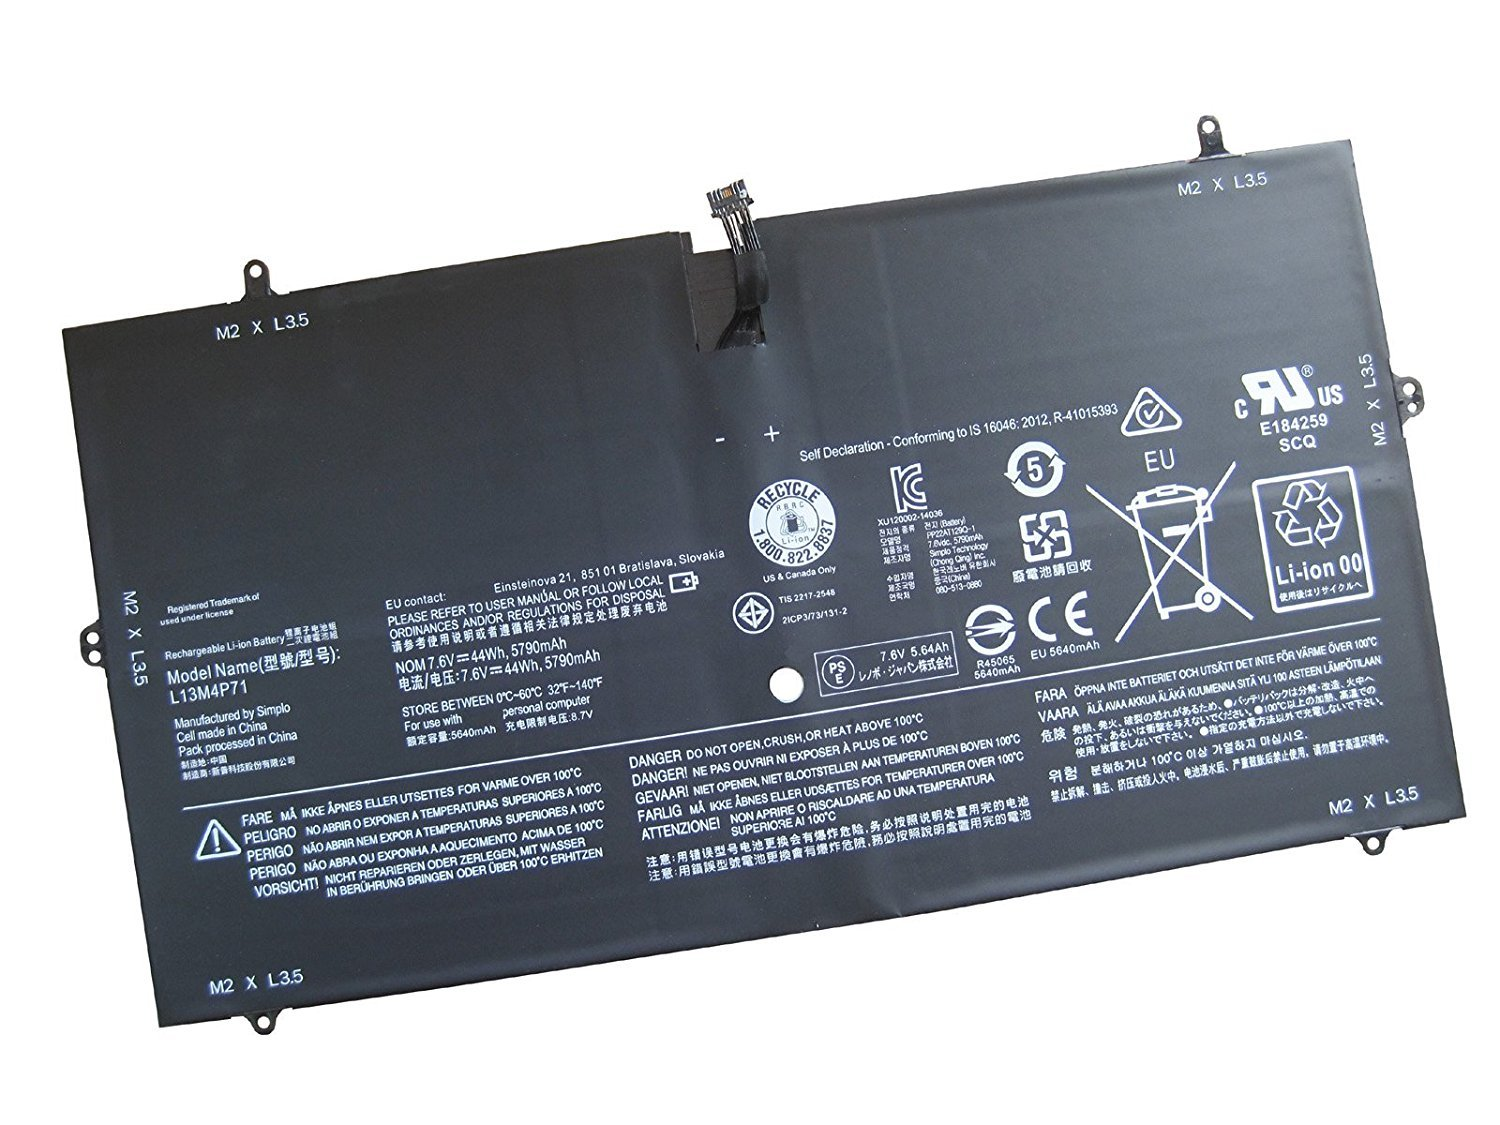 Batterymarket New L13M4P71 Replacement Battery Compatible with Lenovo Yoga 3 Pro 1370 Series Laptop - 7.6V 44WH/5900MAH